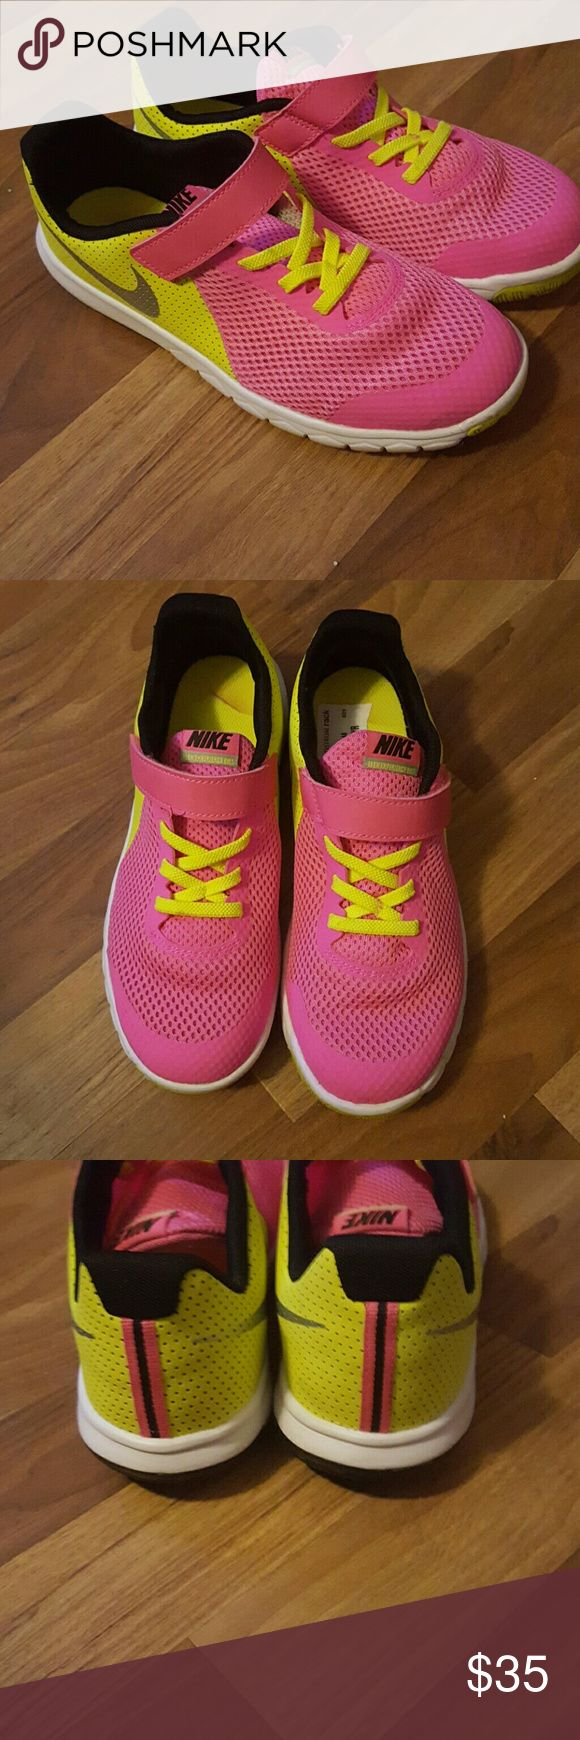 Nike  kids running shoes A very cute light as a feather pair of girly Nike shoes ..in bright pink and highlighter yellow with silver Nike  sign on side ..no need to tie ..Velcro  one strap  size 3 youth ..bought for my daughter she loves the style of these shoes..but not the color ! She wore them once bought at Nordstrom rack Nike Shoes Sneakers